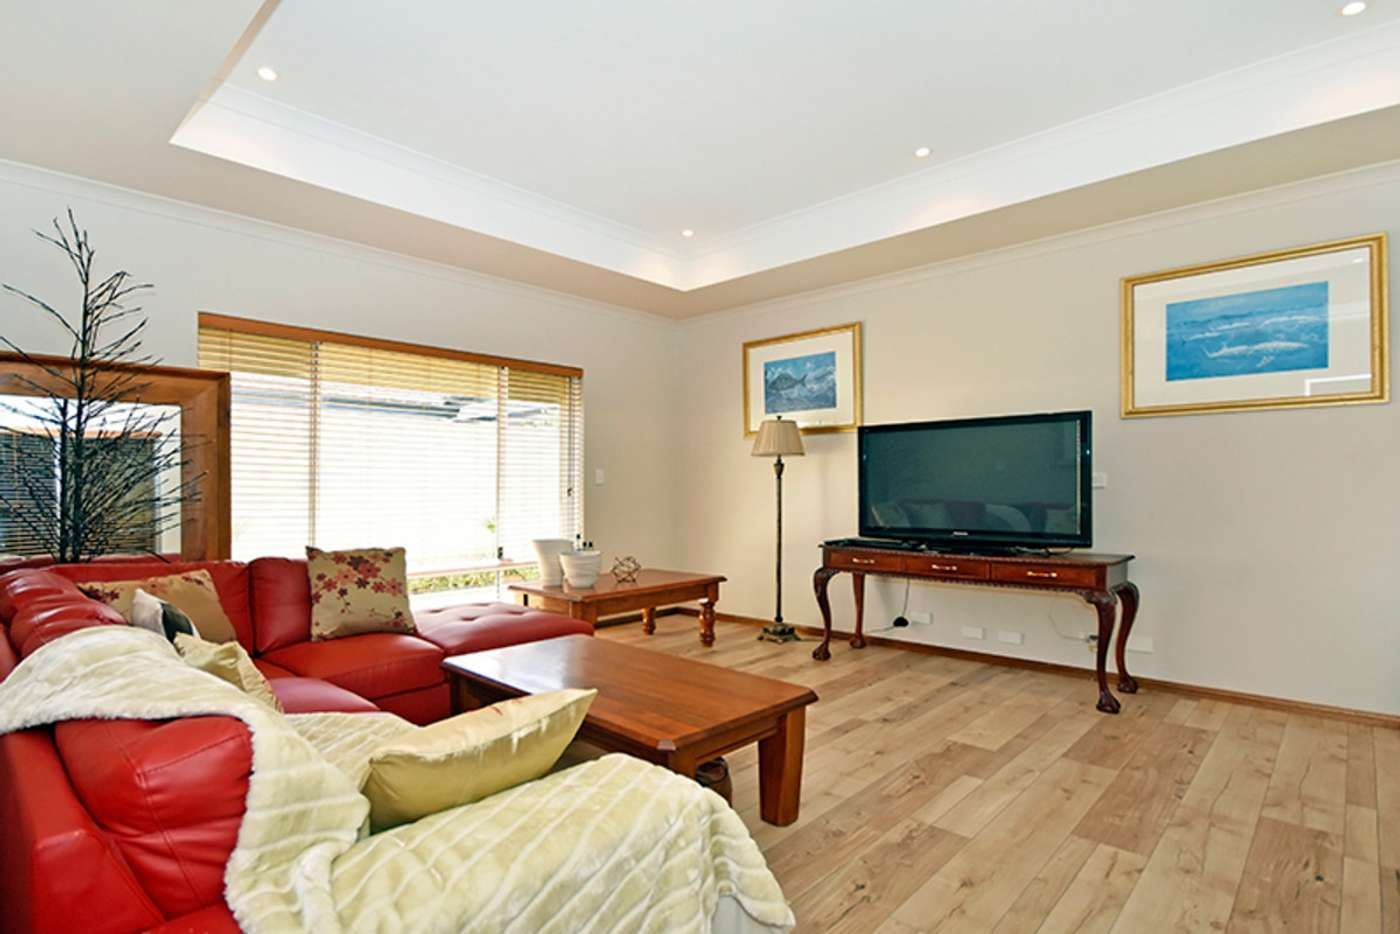 Fifth view of Homely house listing, 12 Colorino Avenue, Caversham WA 6055